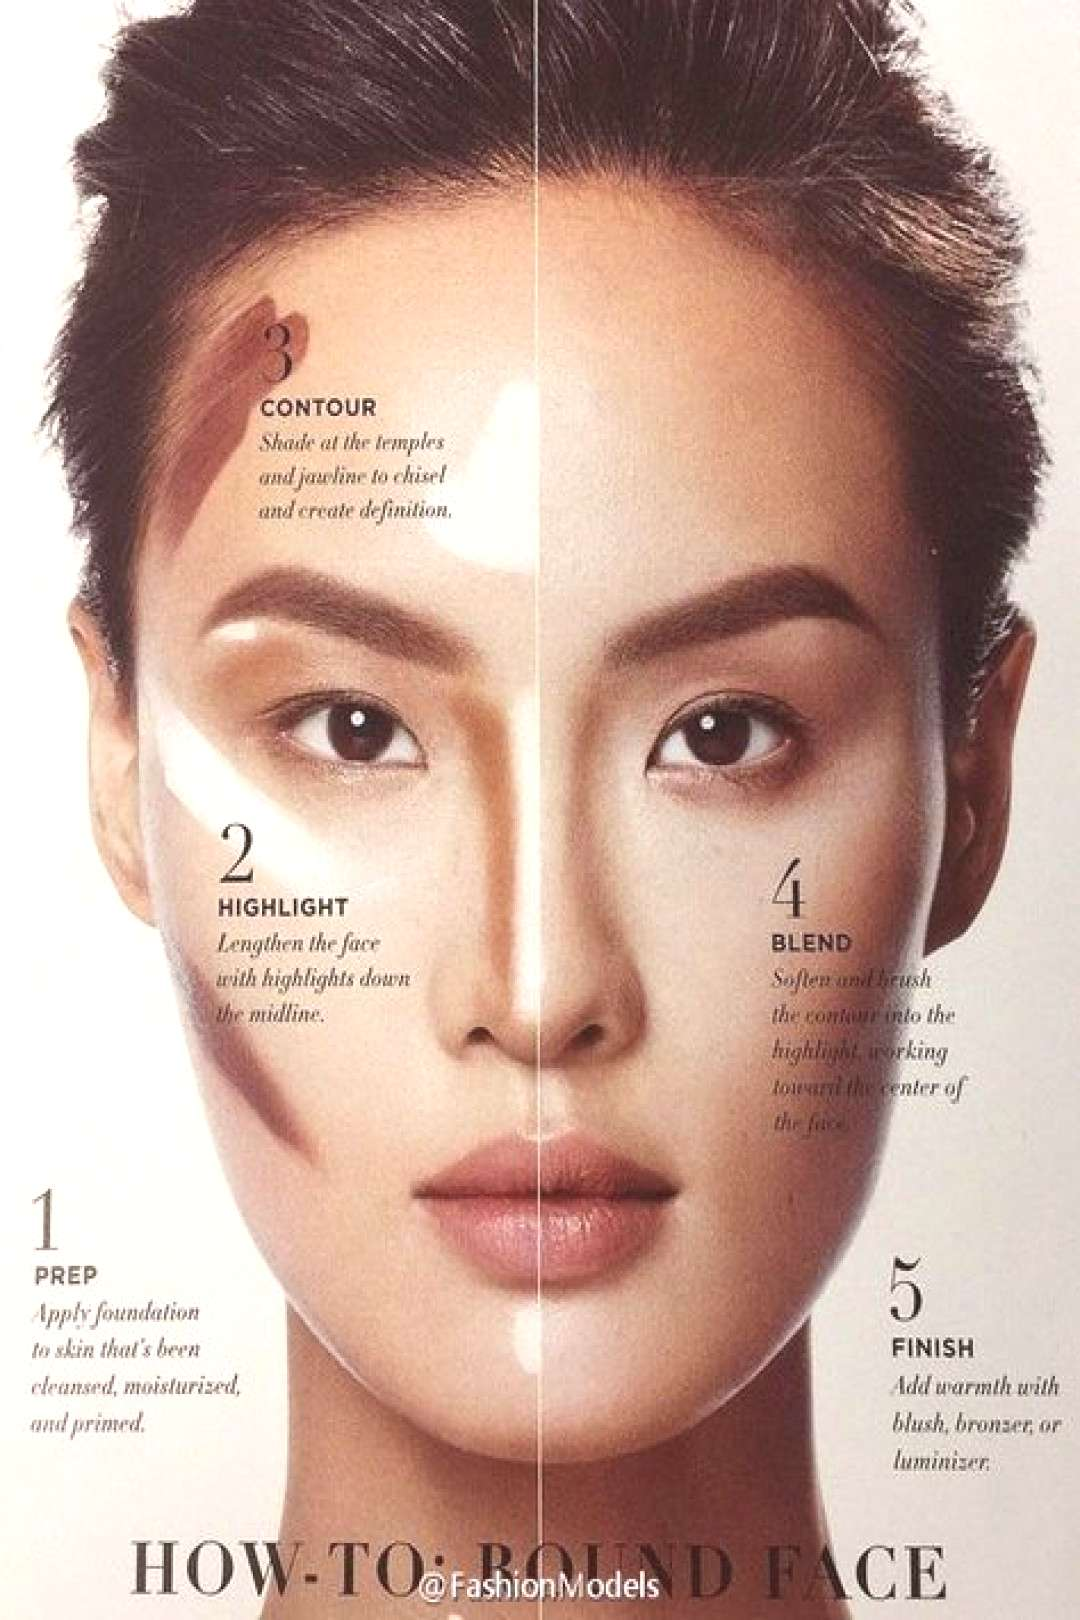 33 ideas for makeup tutorial contouring round face#contouring